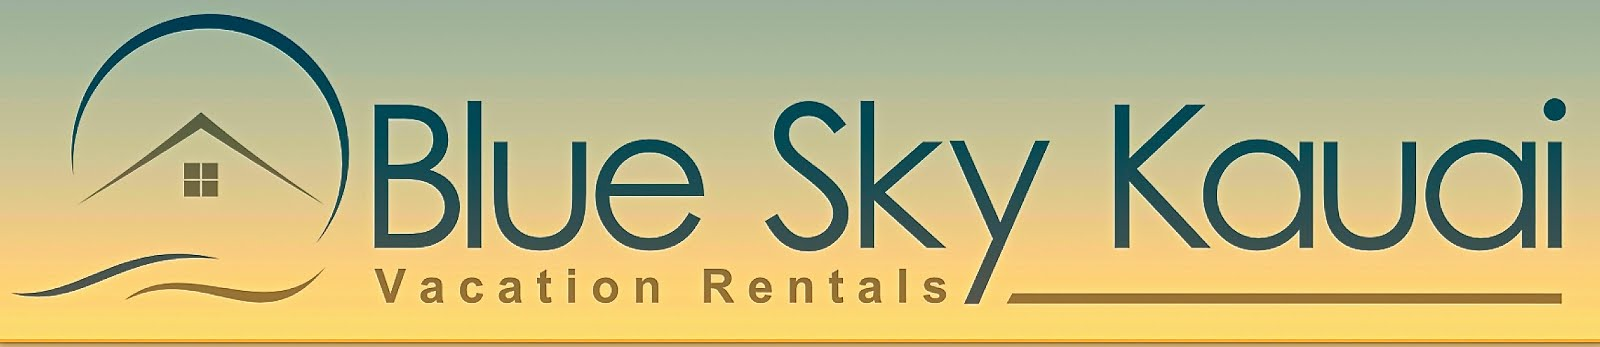 Blue Sky Kauai North Shore Luxury Vacation Rentals